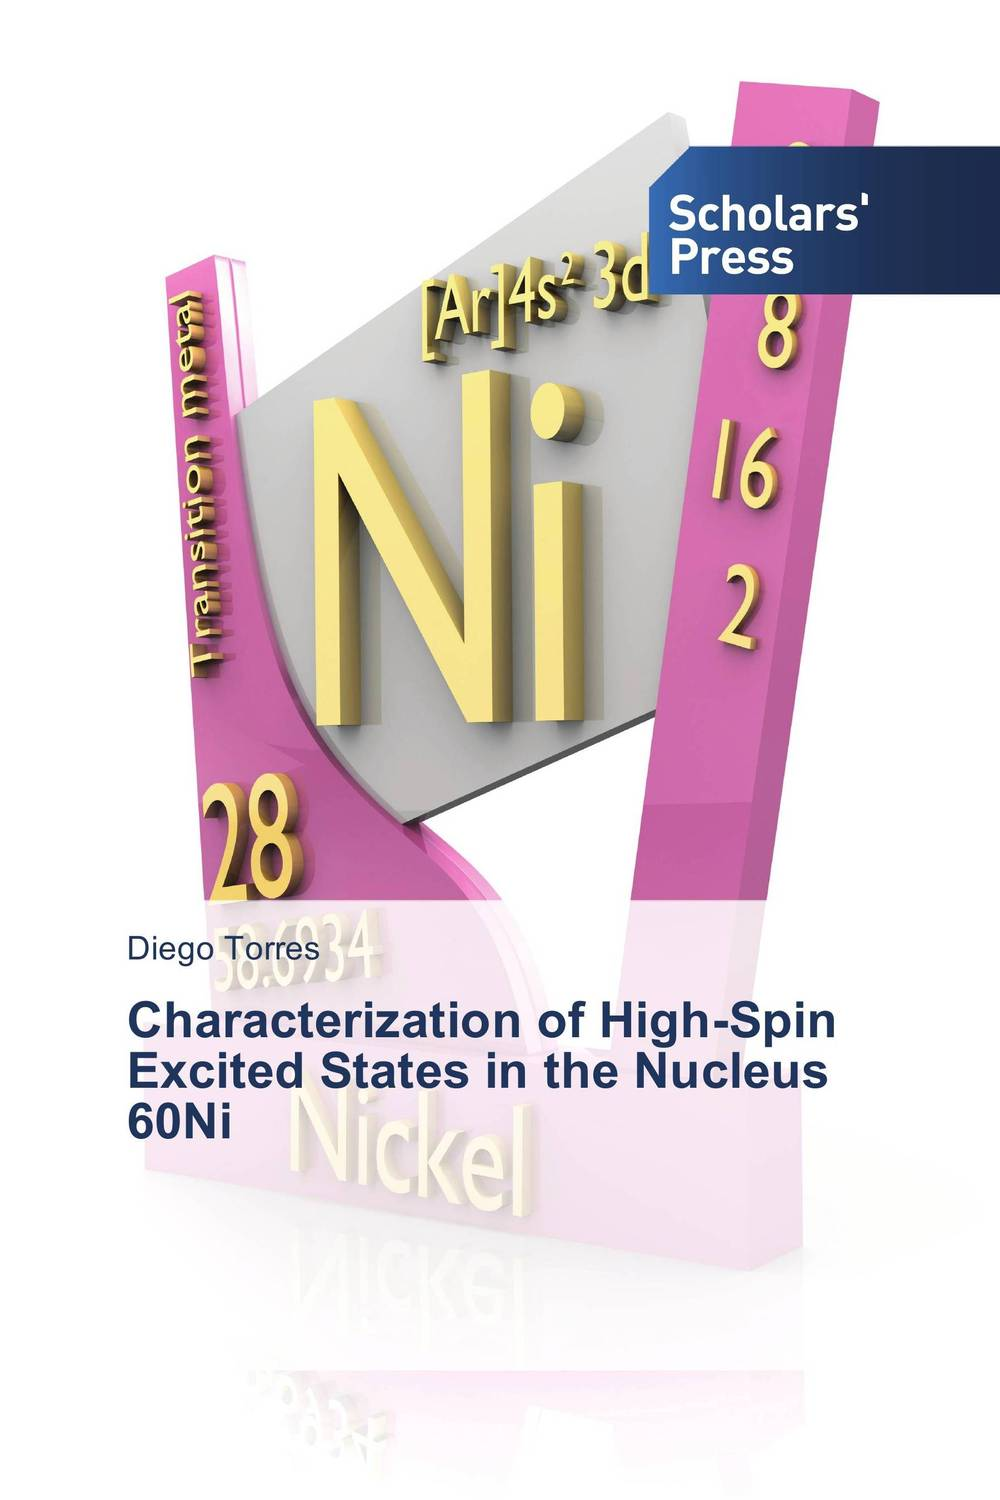 Characterization of High-Spin Excited States in the Nucleus 60Ni